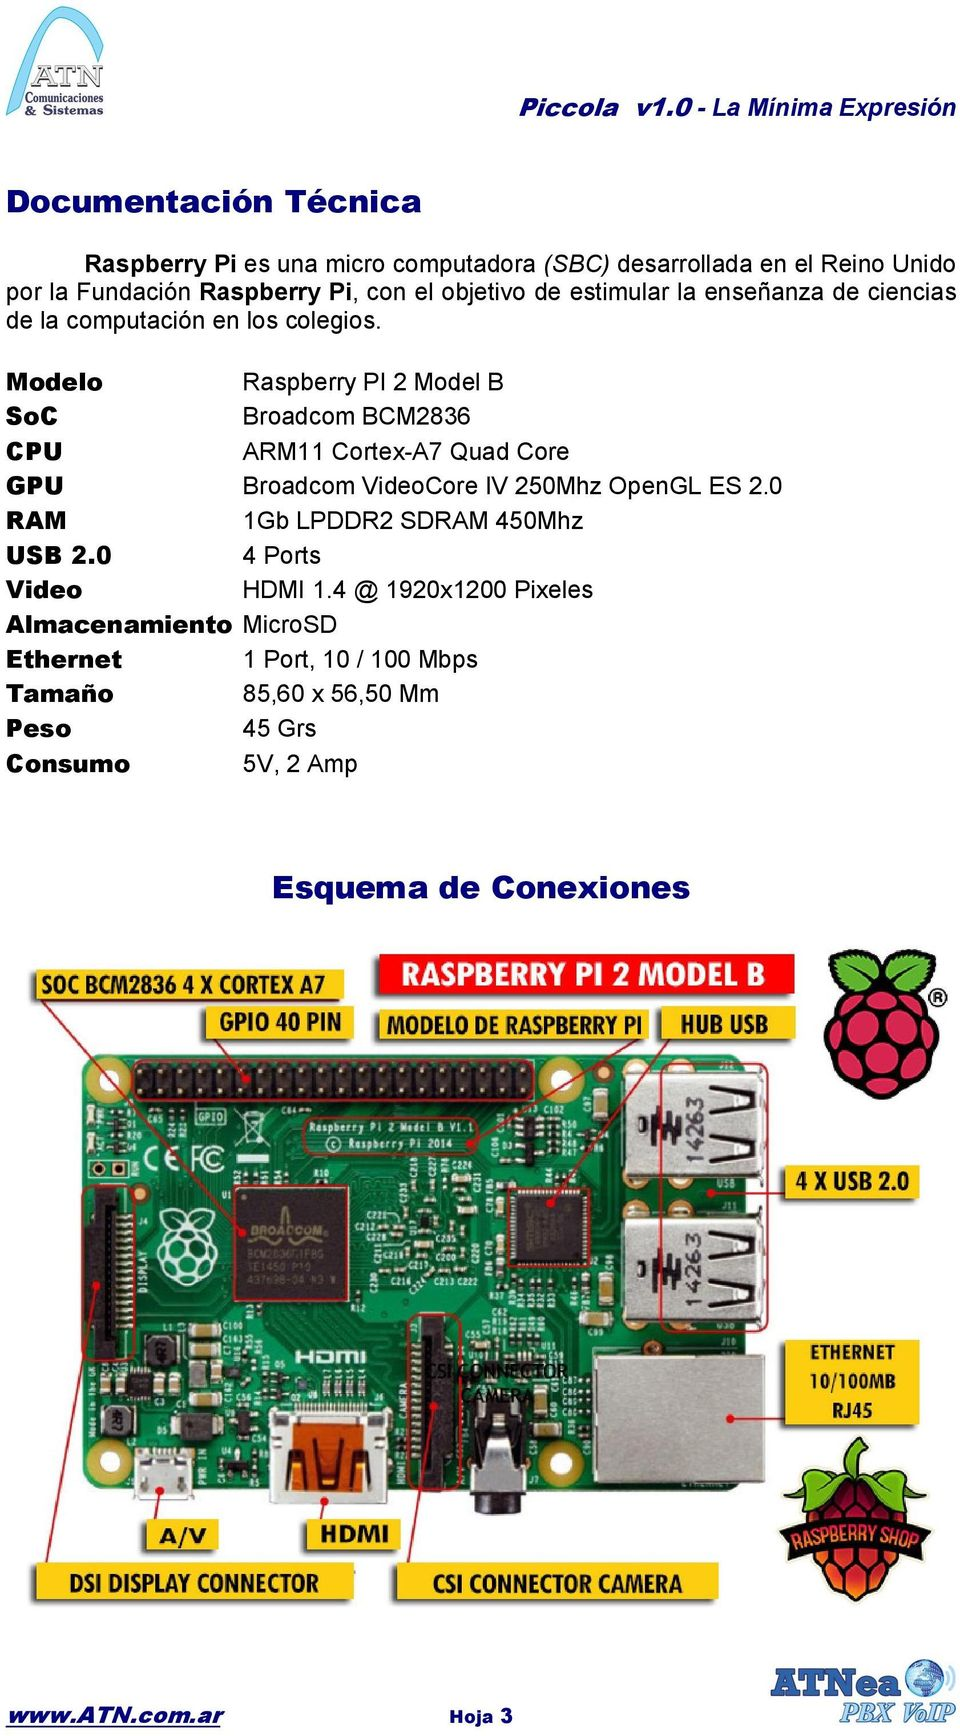 Modelo Raspberry PI 2 Model B SoC Broadcom BCM2836 CPU ARM11 Cortex-A7 Quad Core GPU Broadcom VideoCore IV 250Mhz OpenGL ES 2.